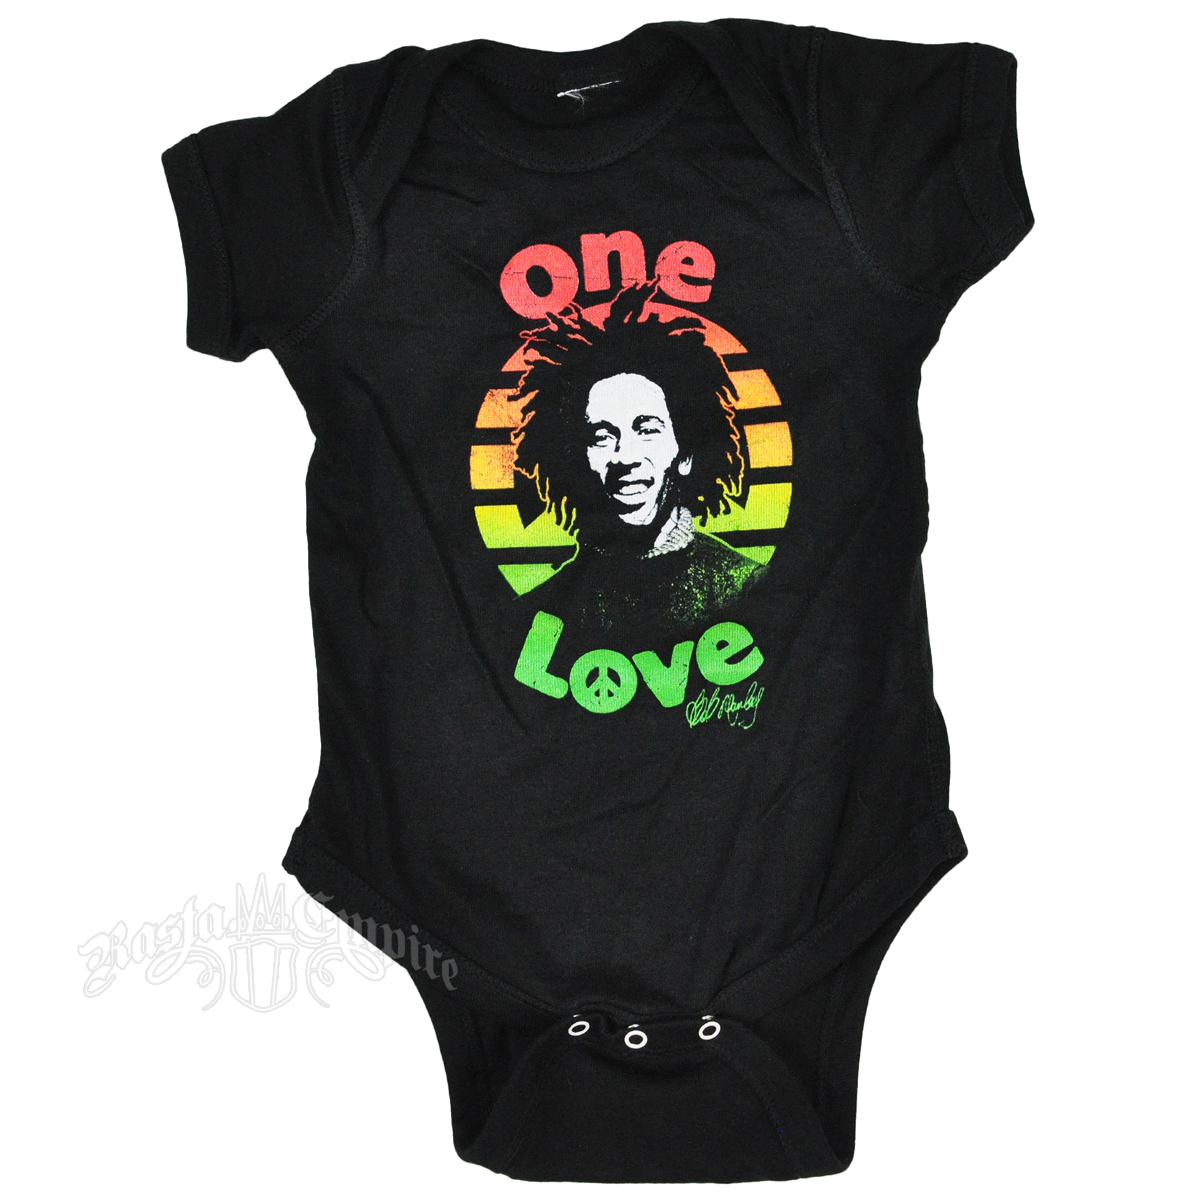 Bob Marley Peace Sign Swirls Yellow Toddler Skirt New Official One Love Baby